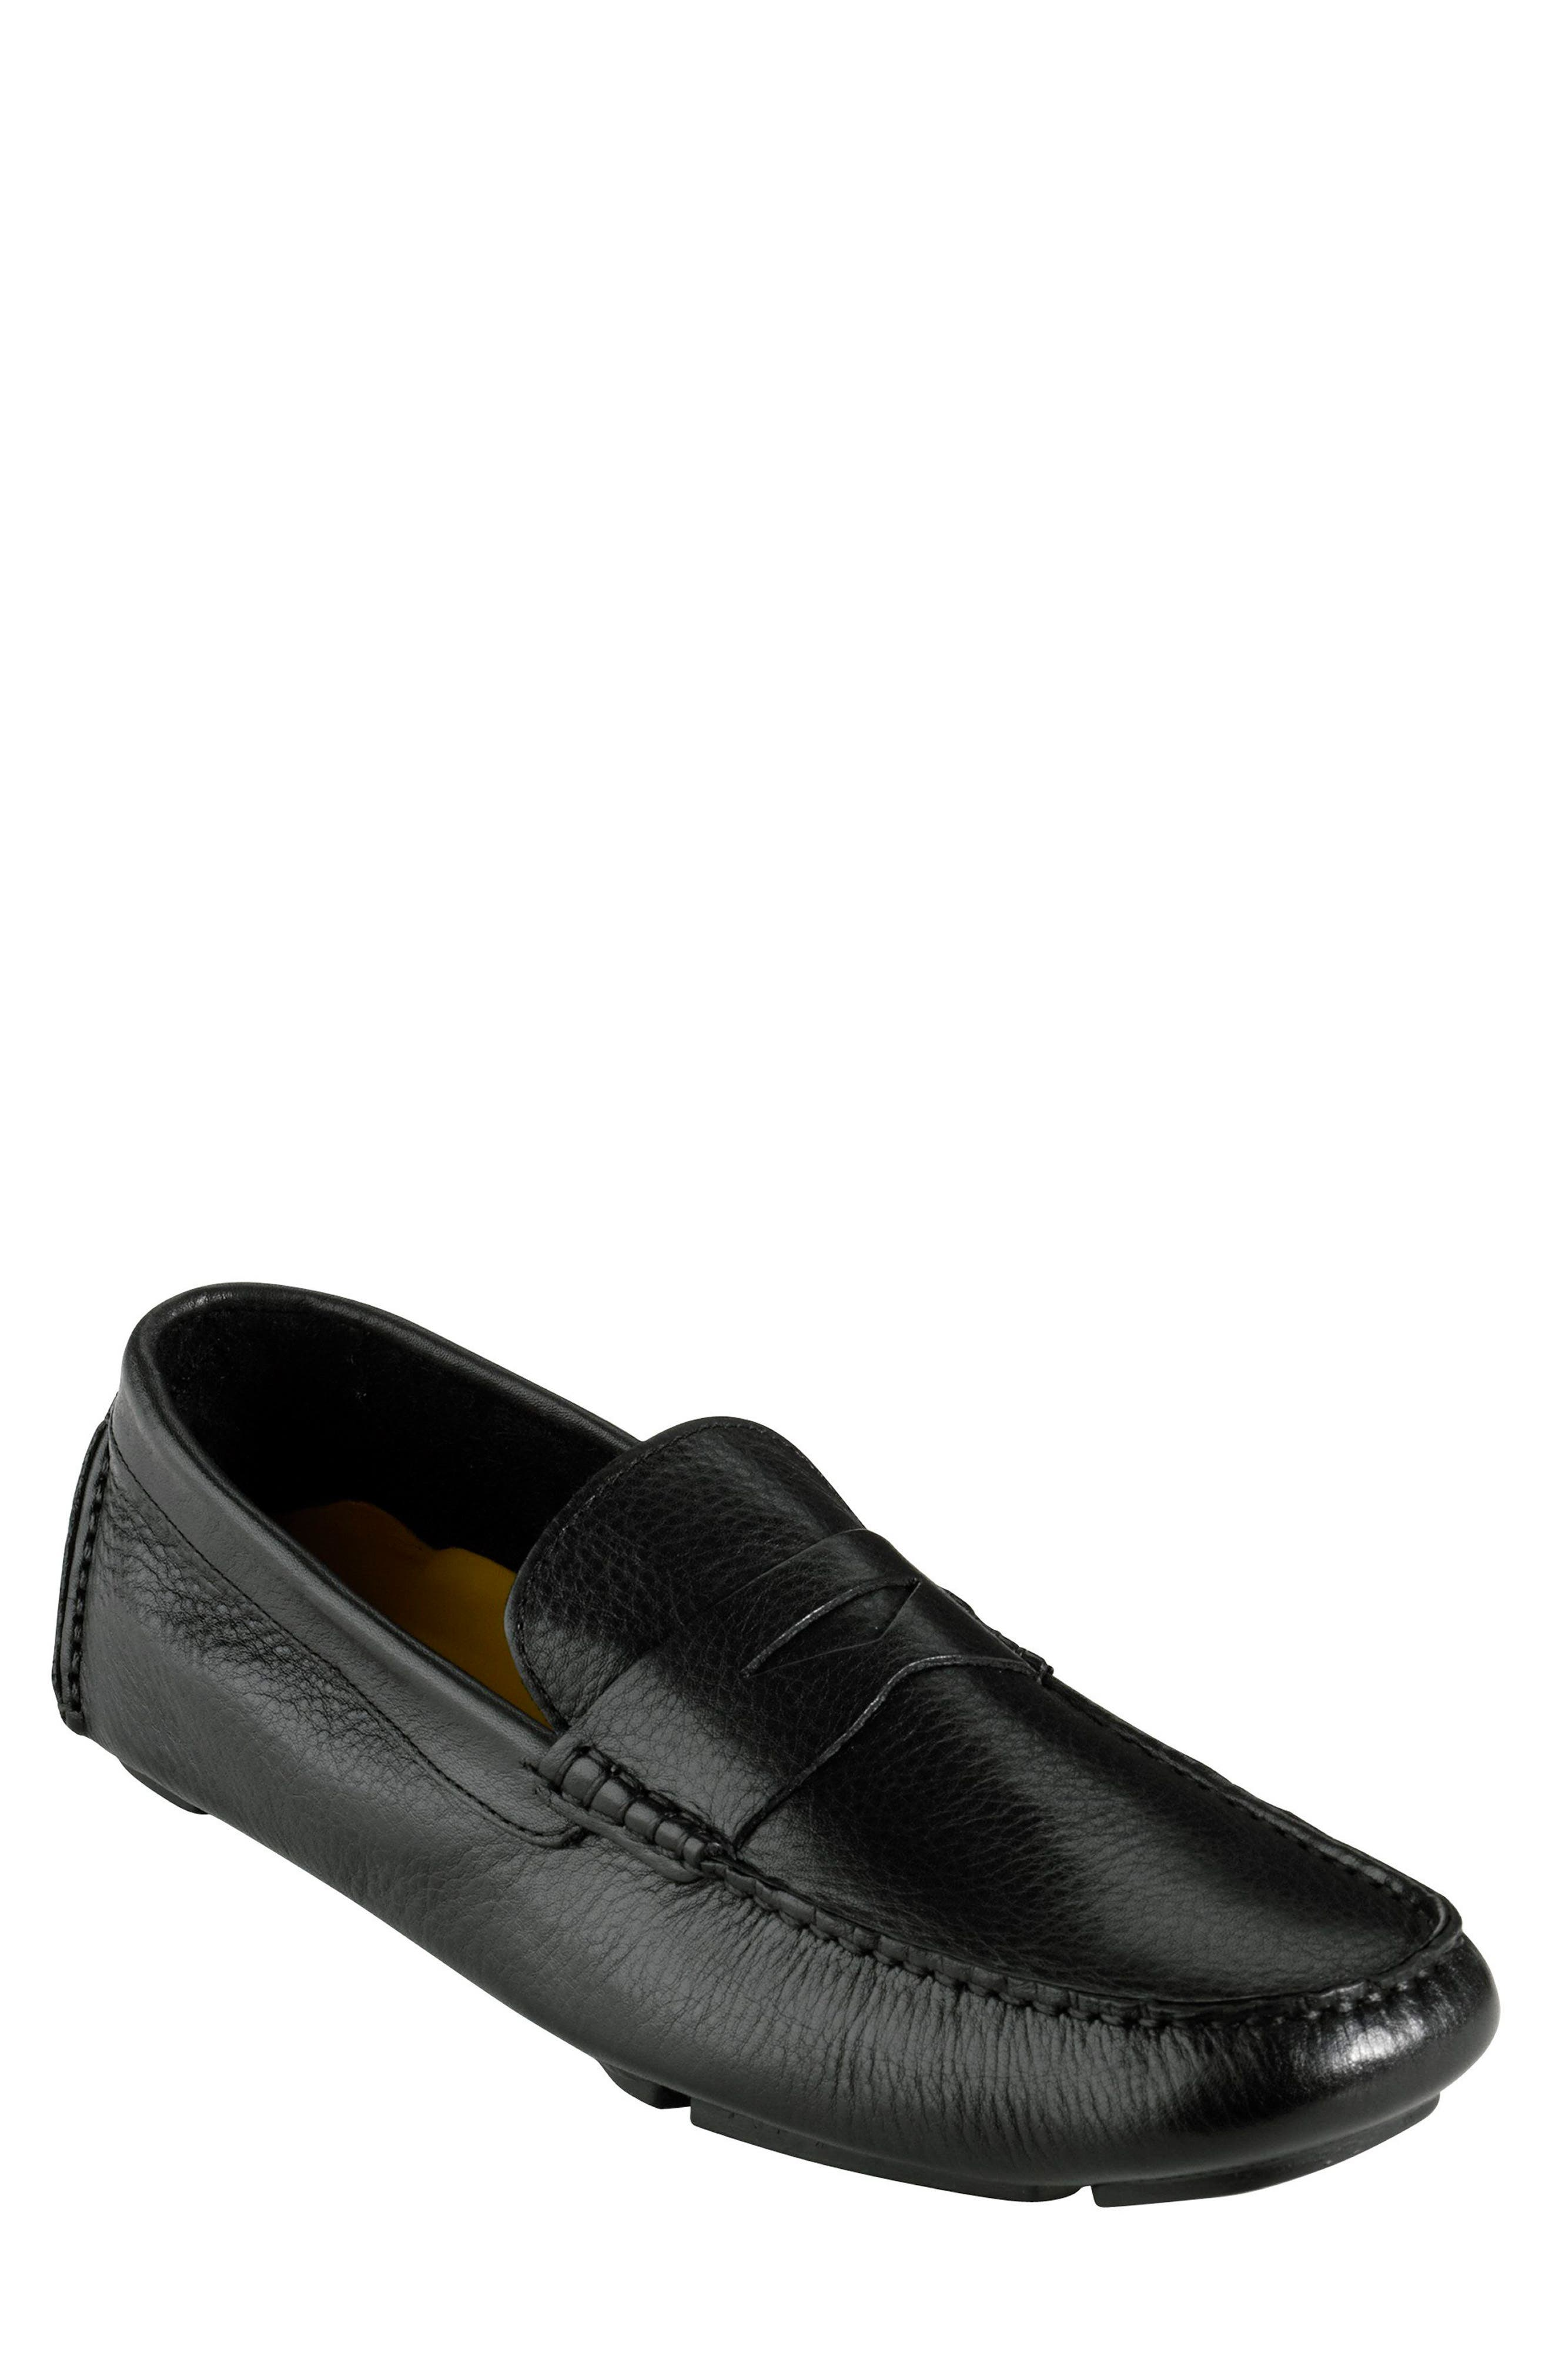 COLE HAAN 'Howland' Penny Loafer, Main, color, BLACK TUMBLED